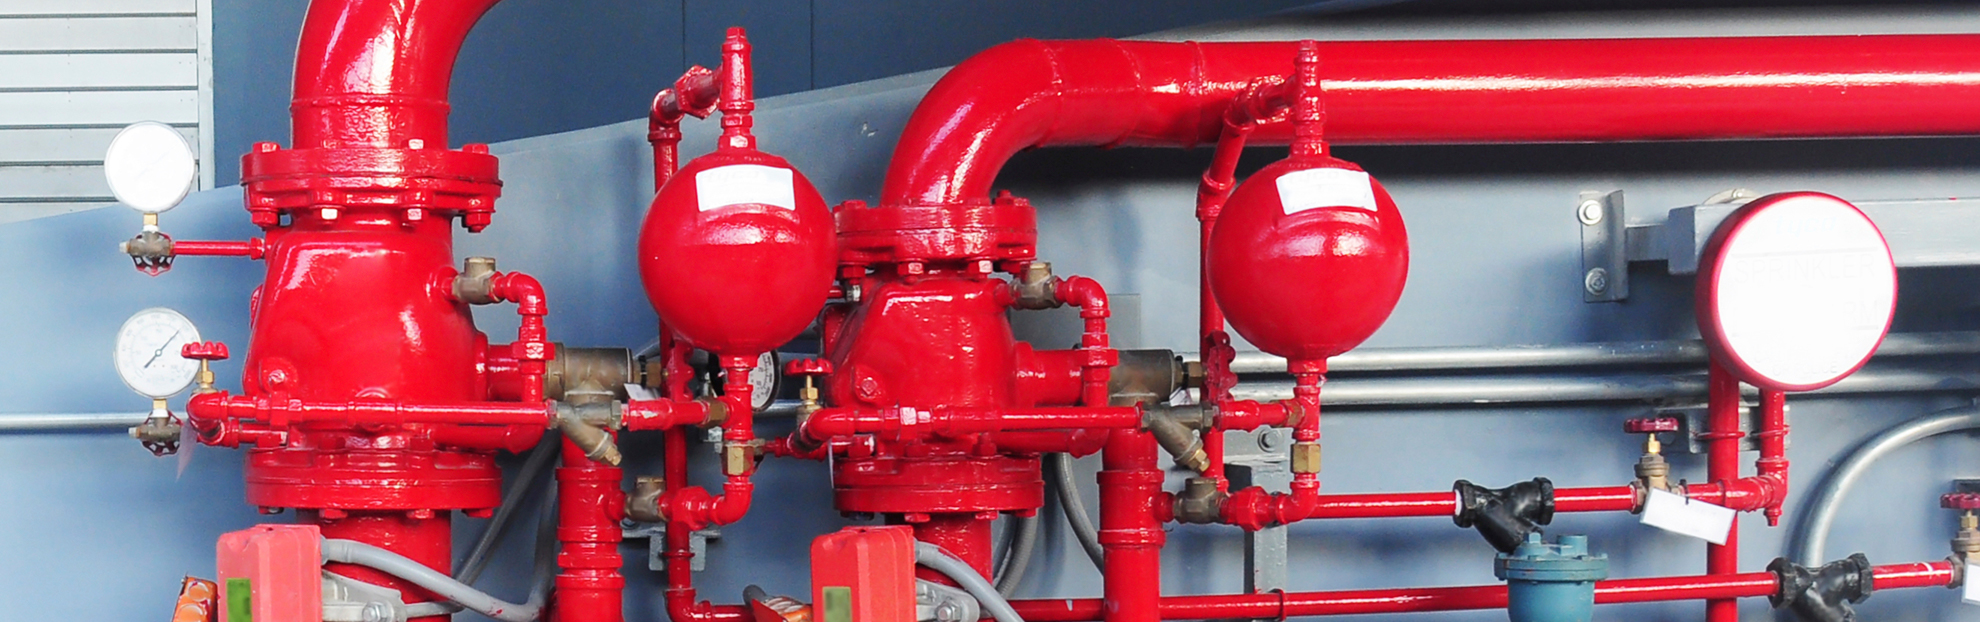 Deluge Systems - Carolina Fire Protection